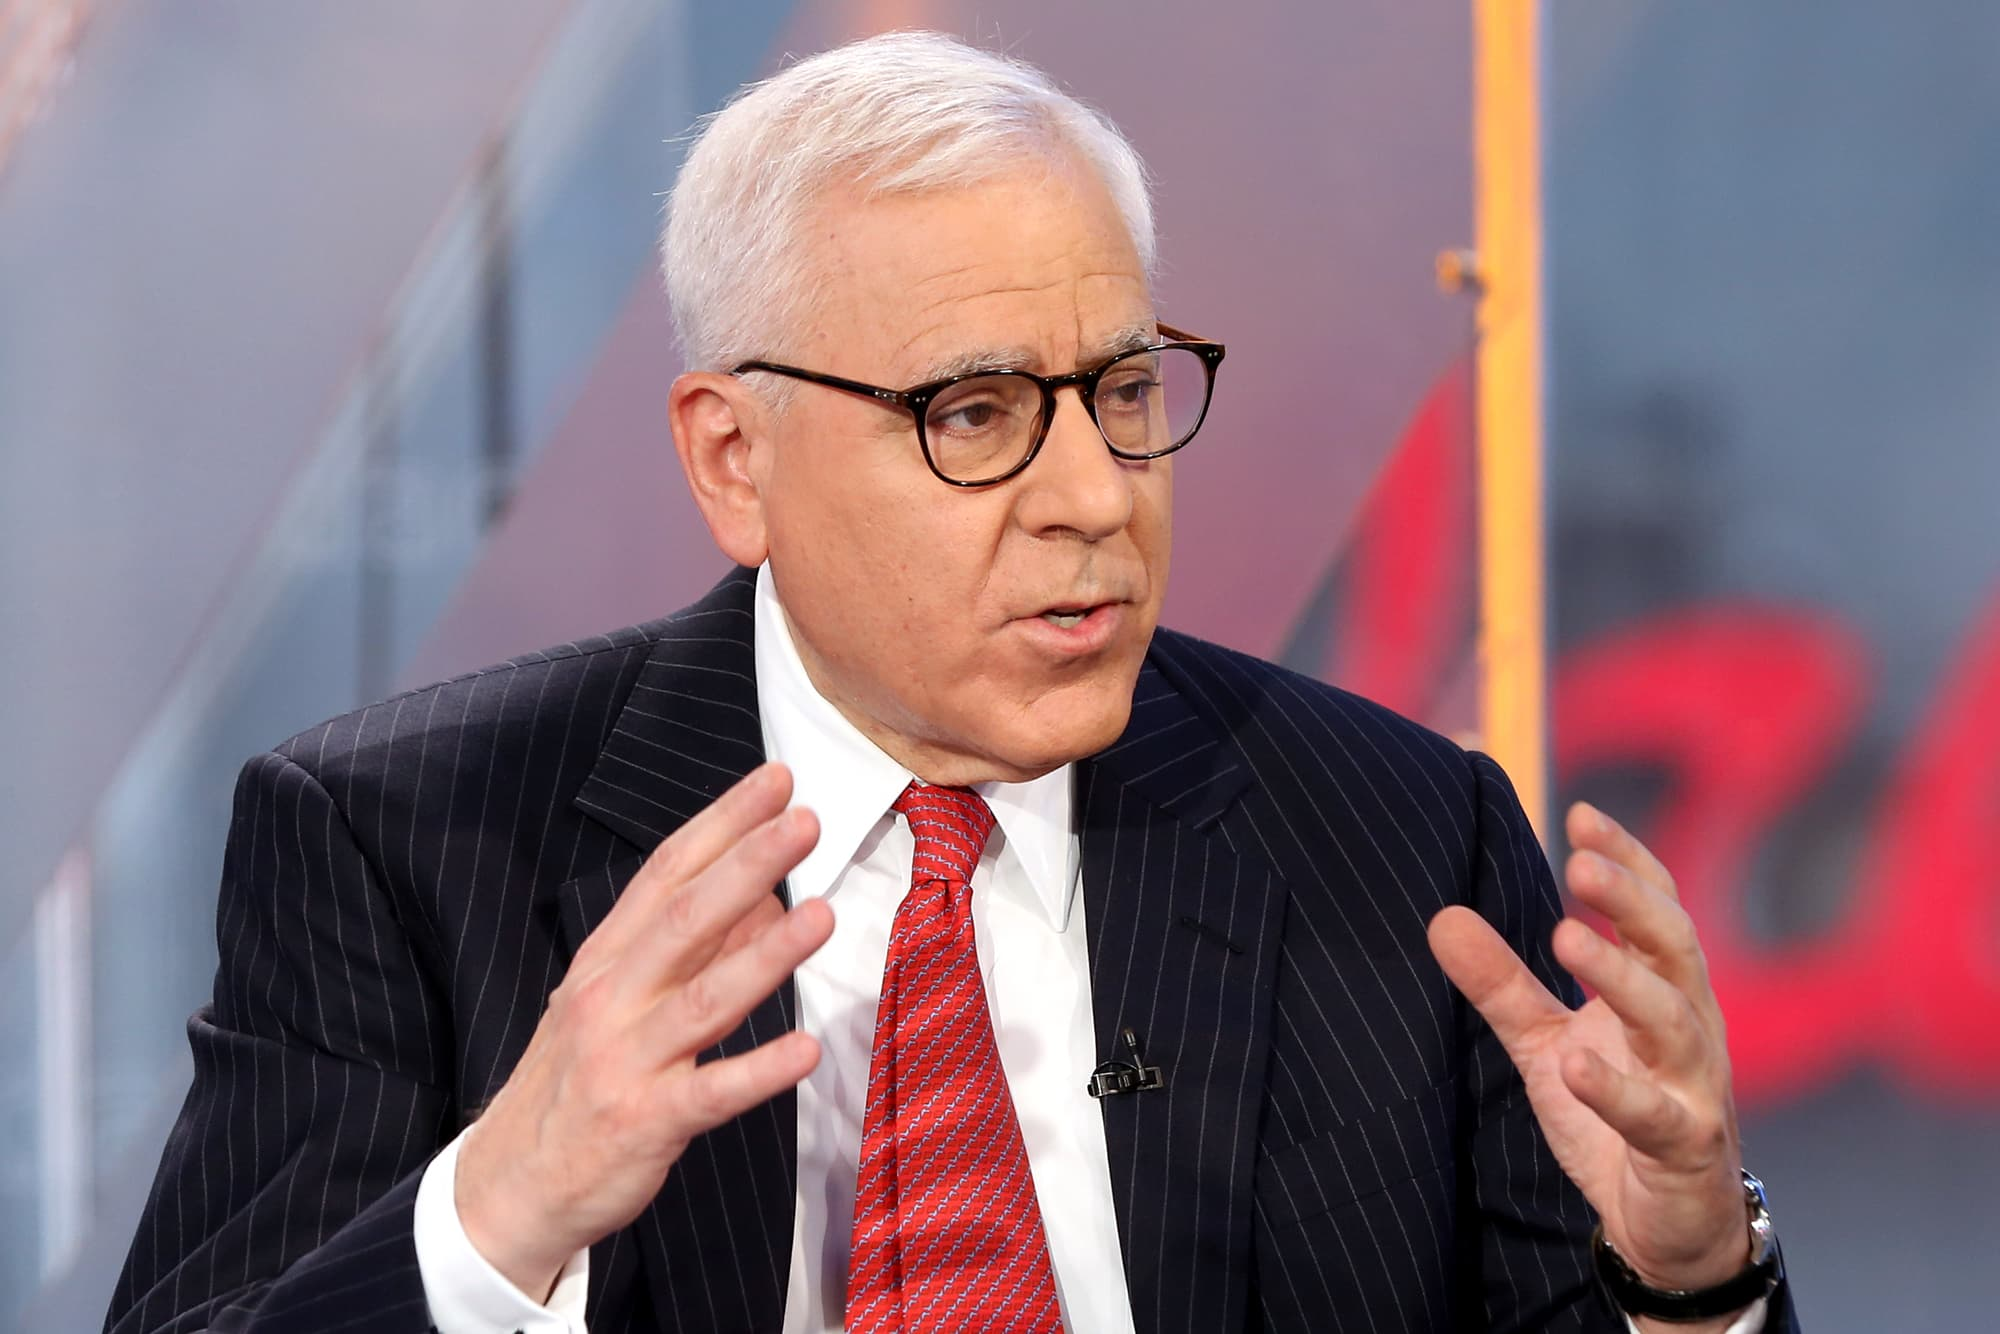 Private equity billionaire David Rubenstein says cryptocurrencies like bitcoin are 'here to stay'